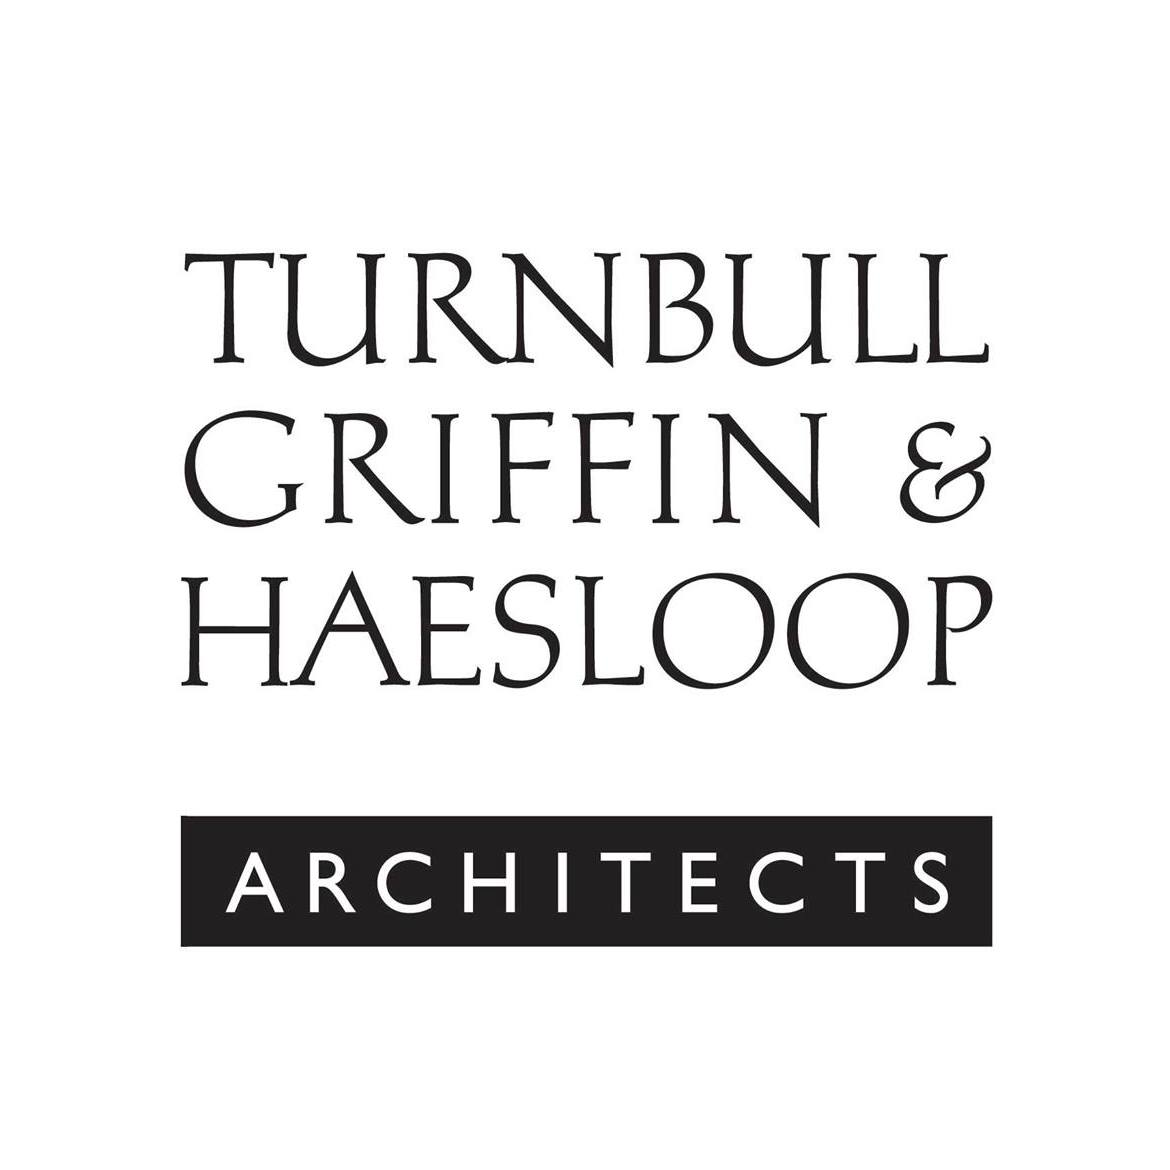 Turnbull Griffin Haesloop Architects, Long Meadow Ranch